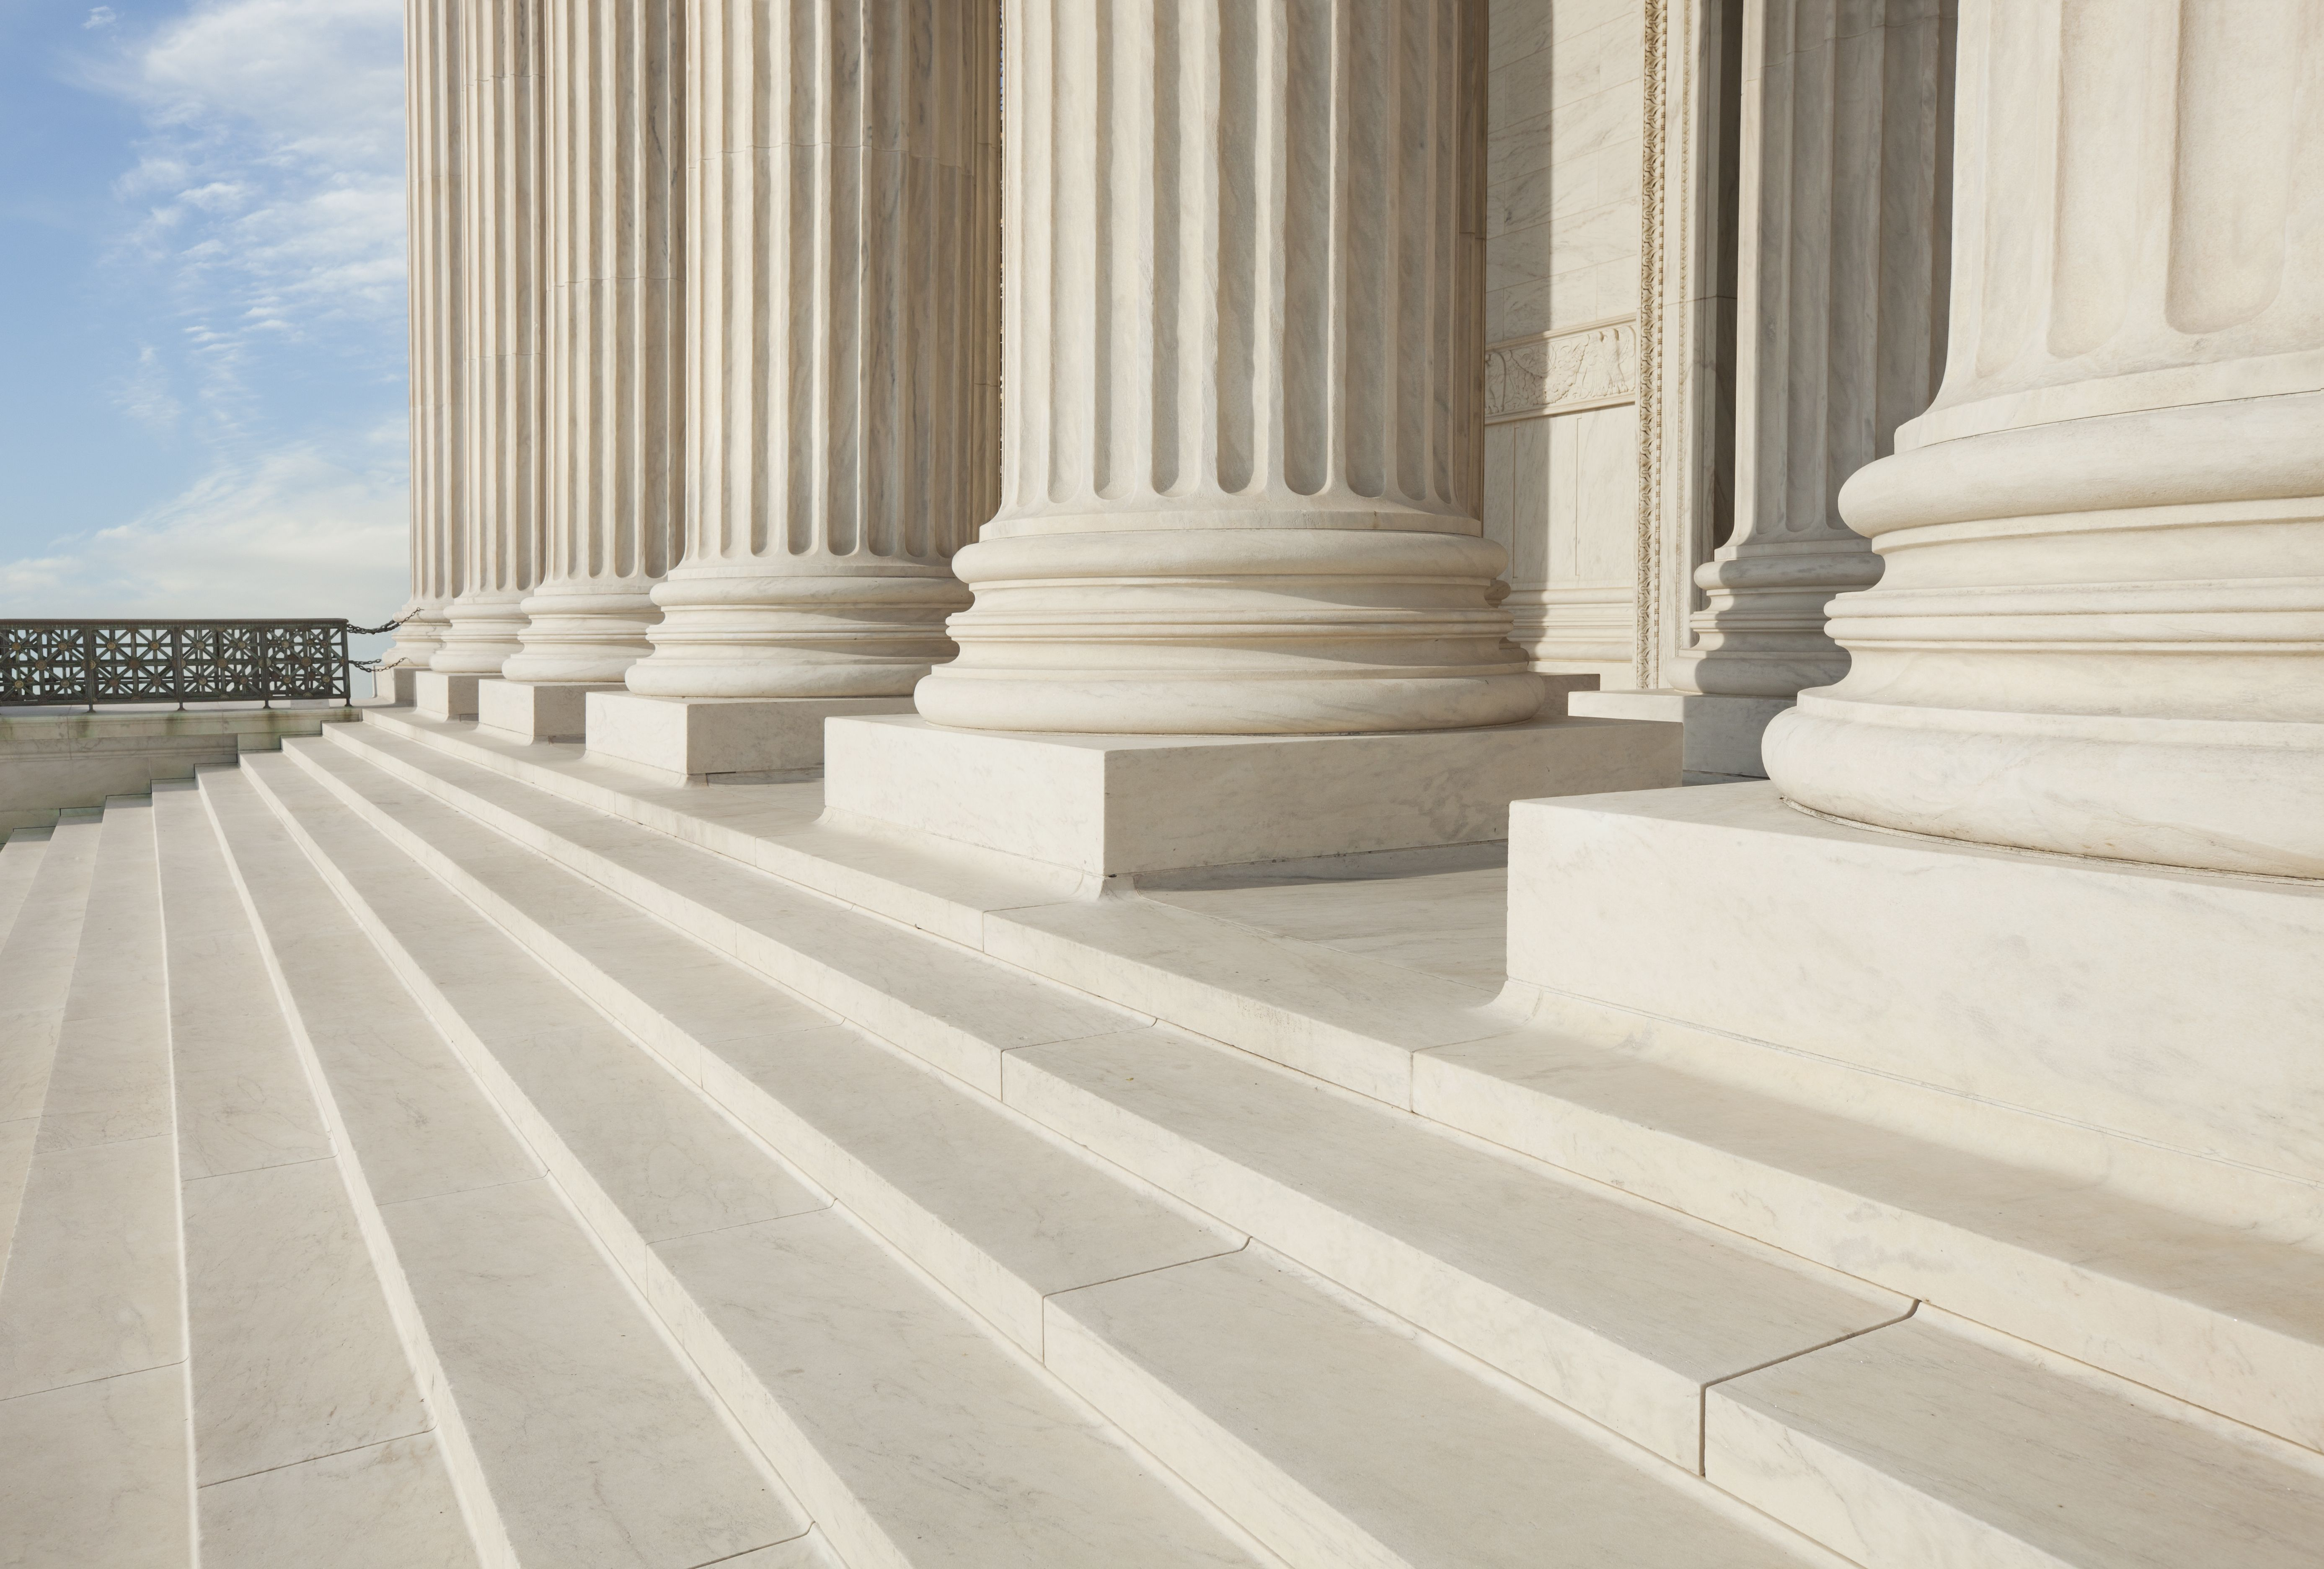 The steps of a court building